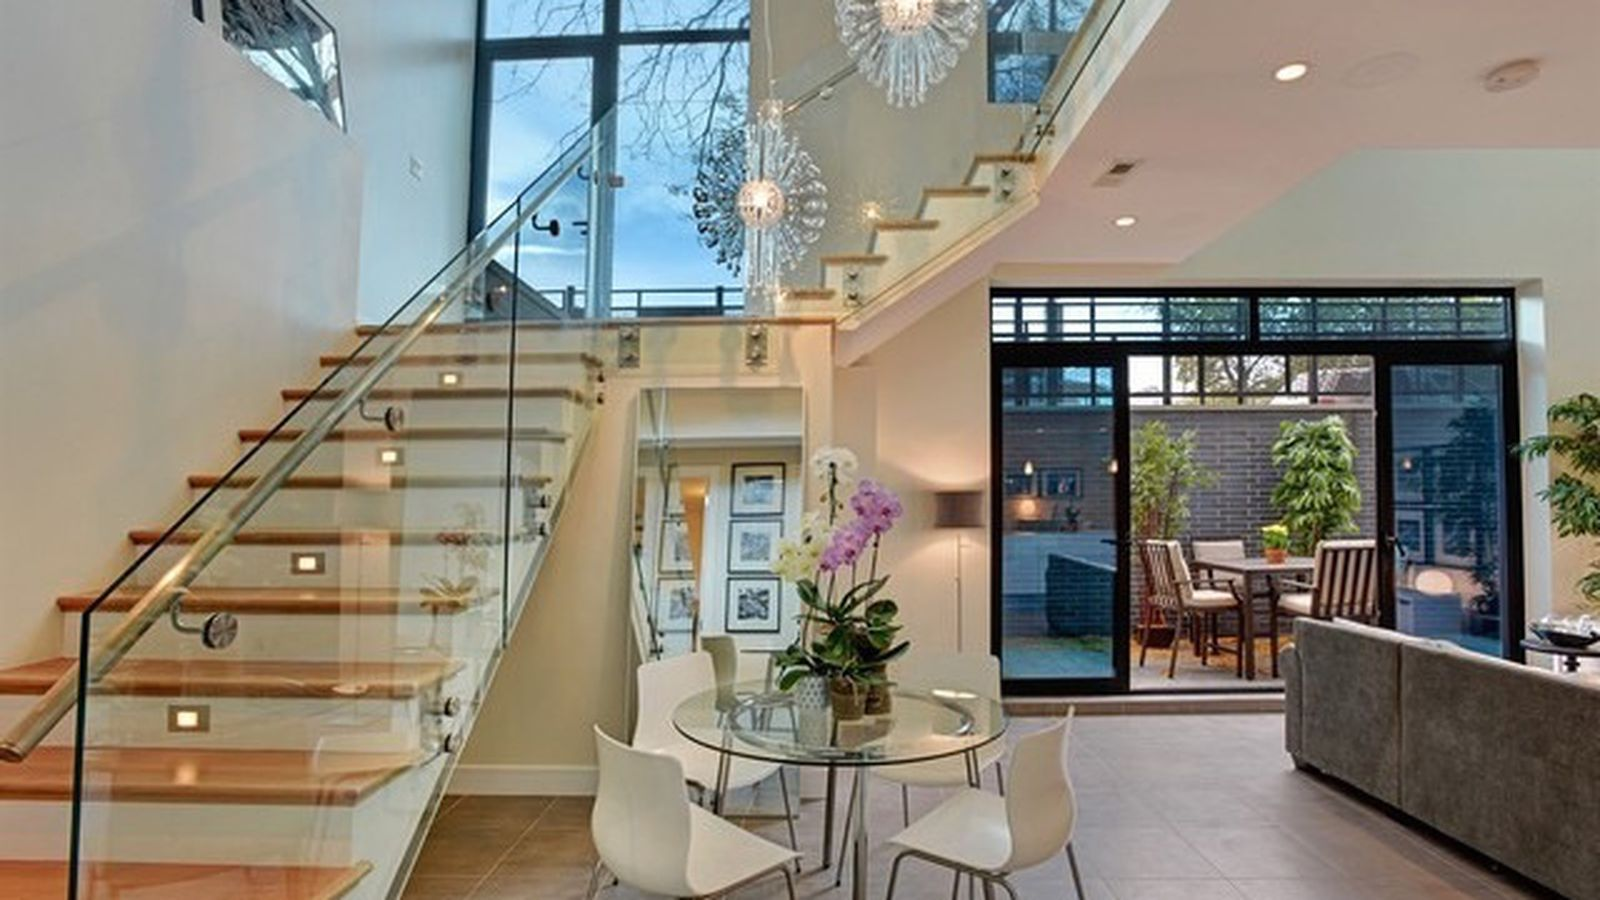 Sleek contemporary duplex condo in lincoln park asks 850k for Nyc duplex for sale